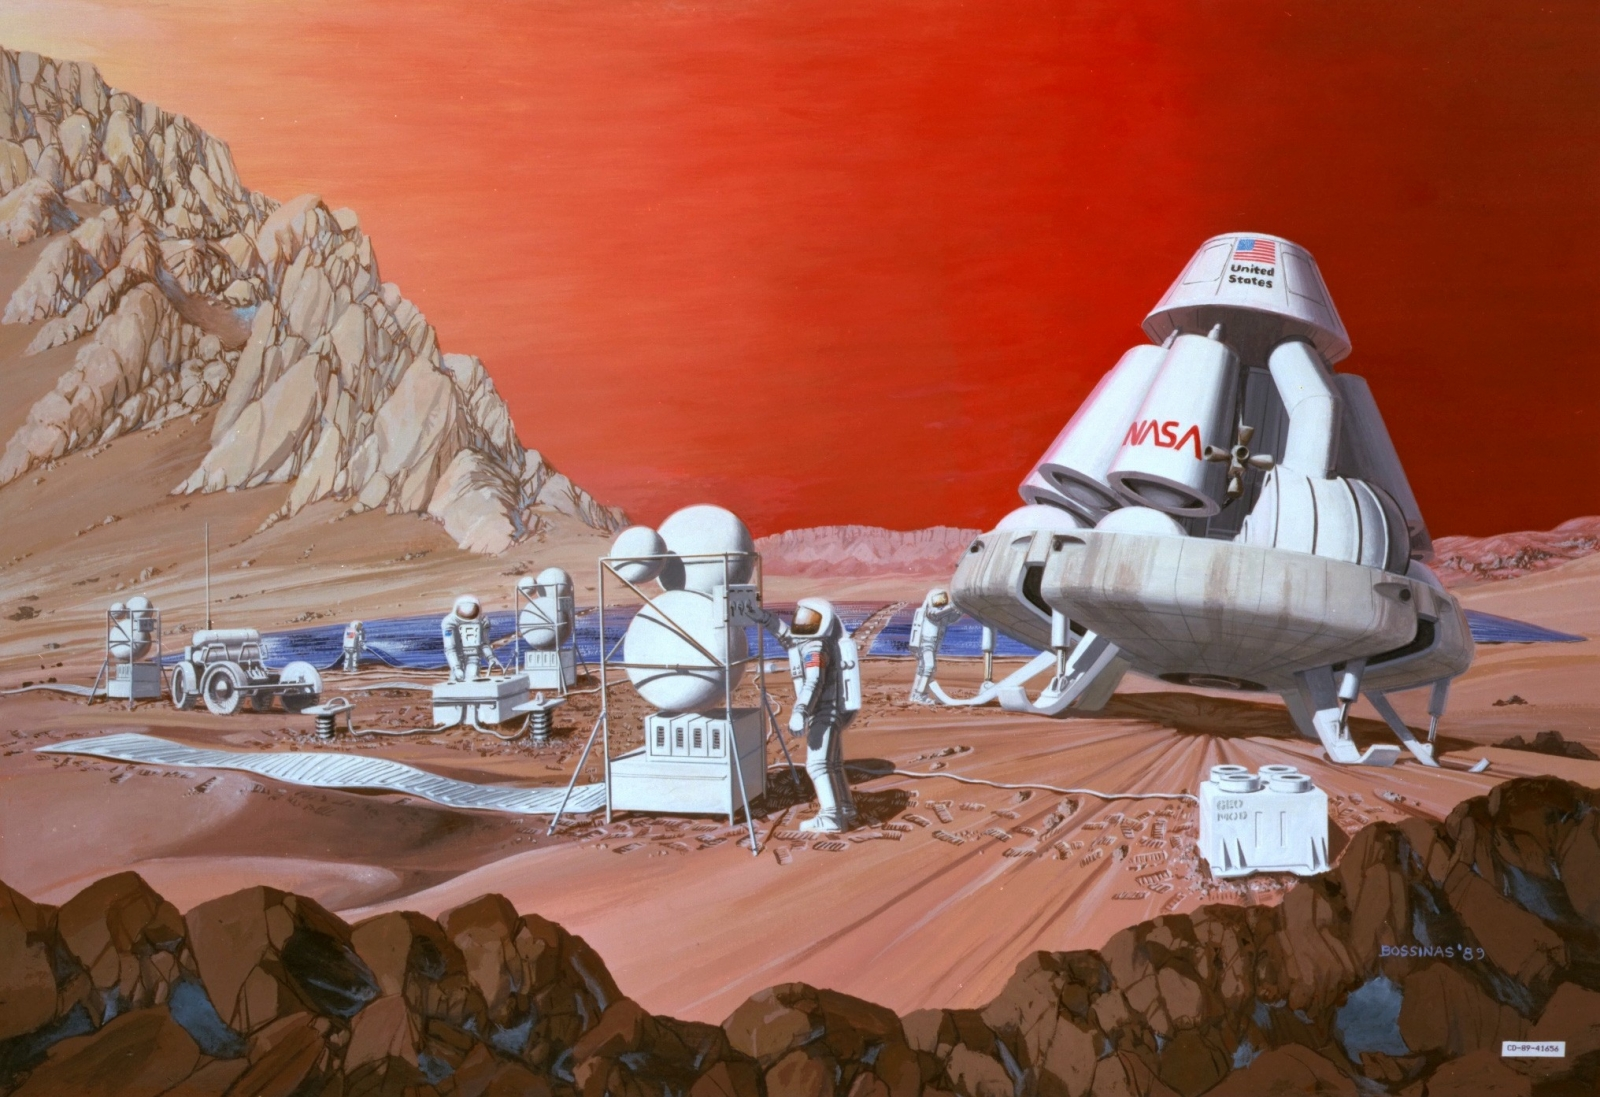 1989 artist conceptualisation of a Mars mission